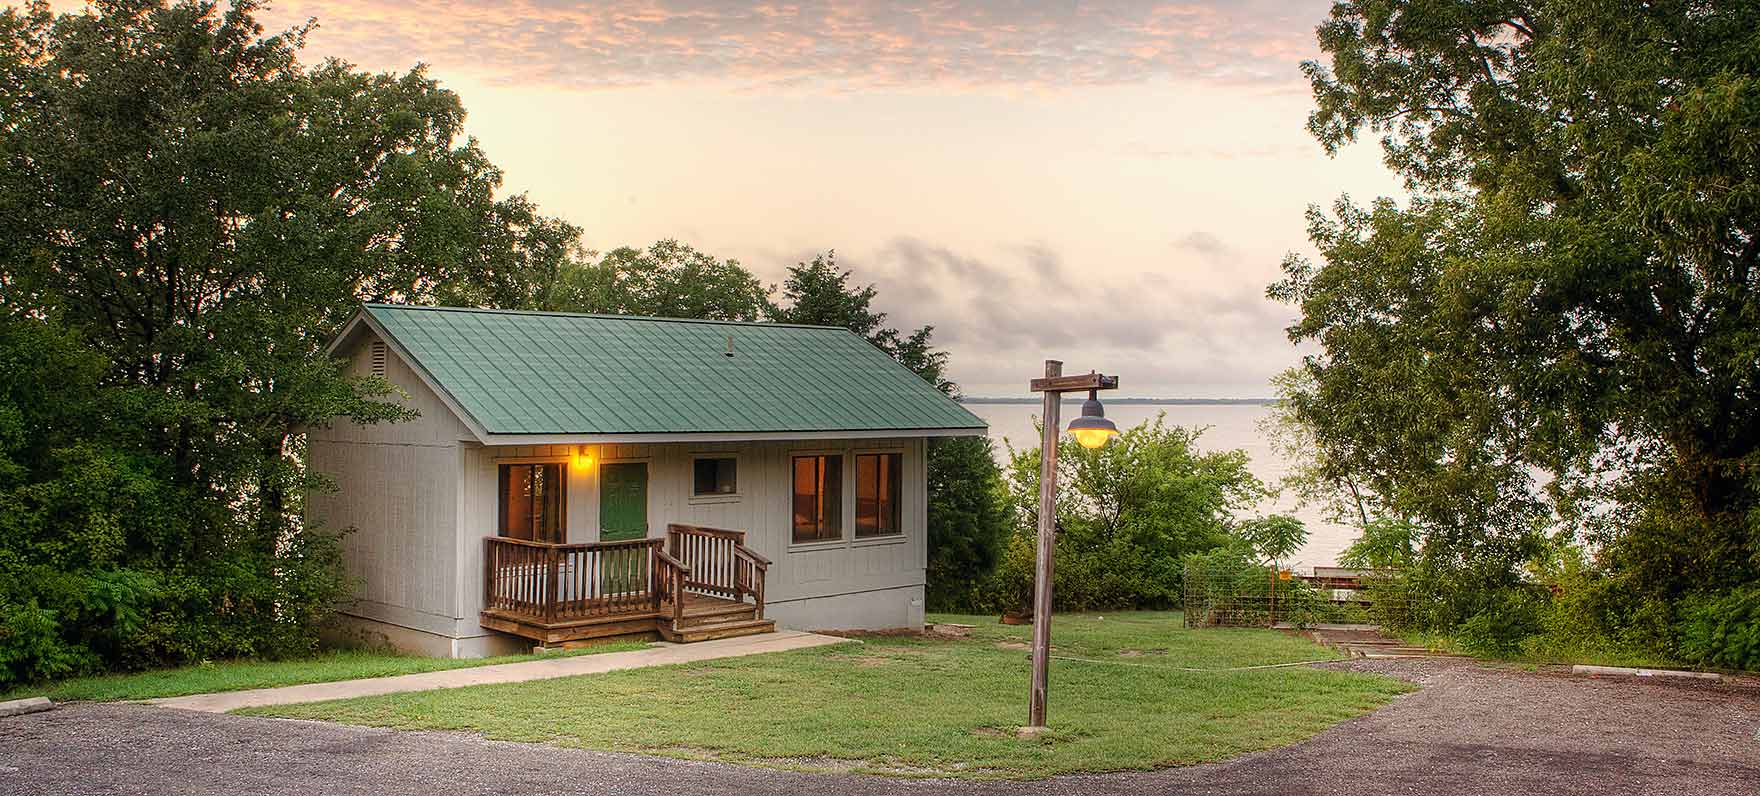 Cooper lake state park texas parks wildlife department for Fishing cabins for rent in texas